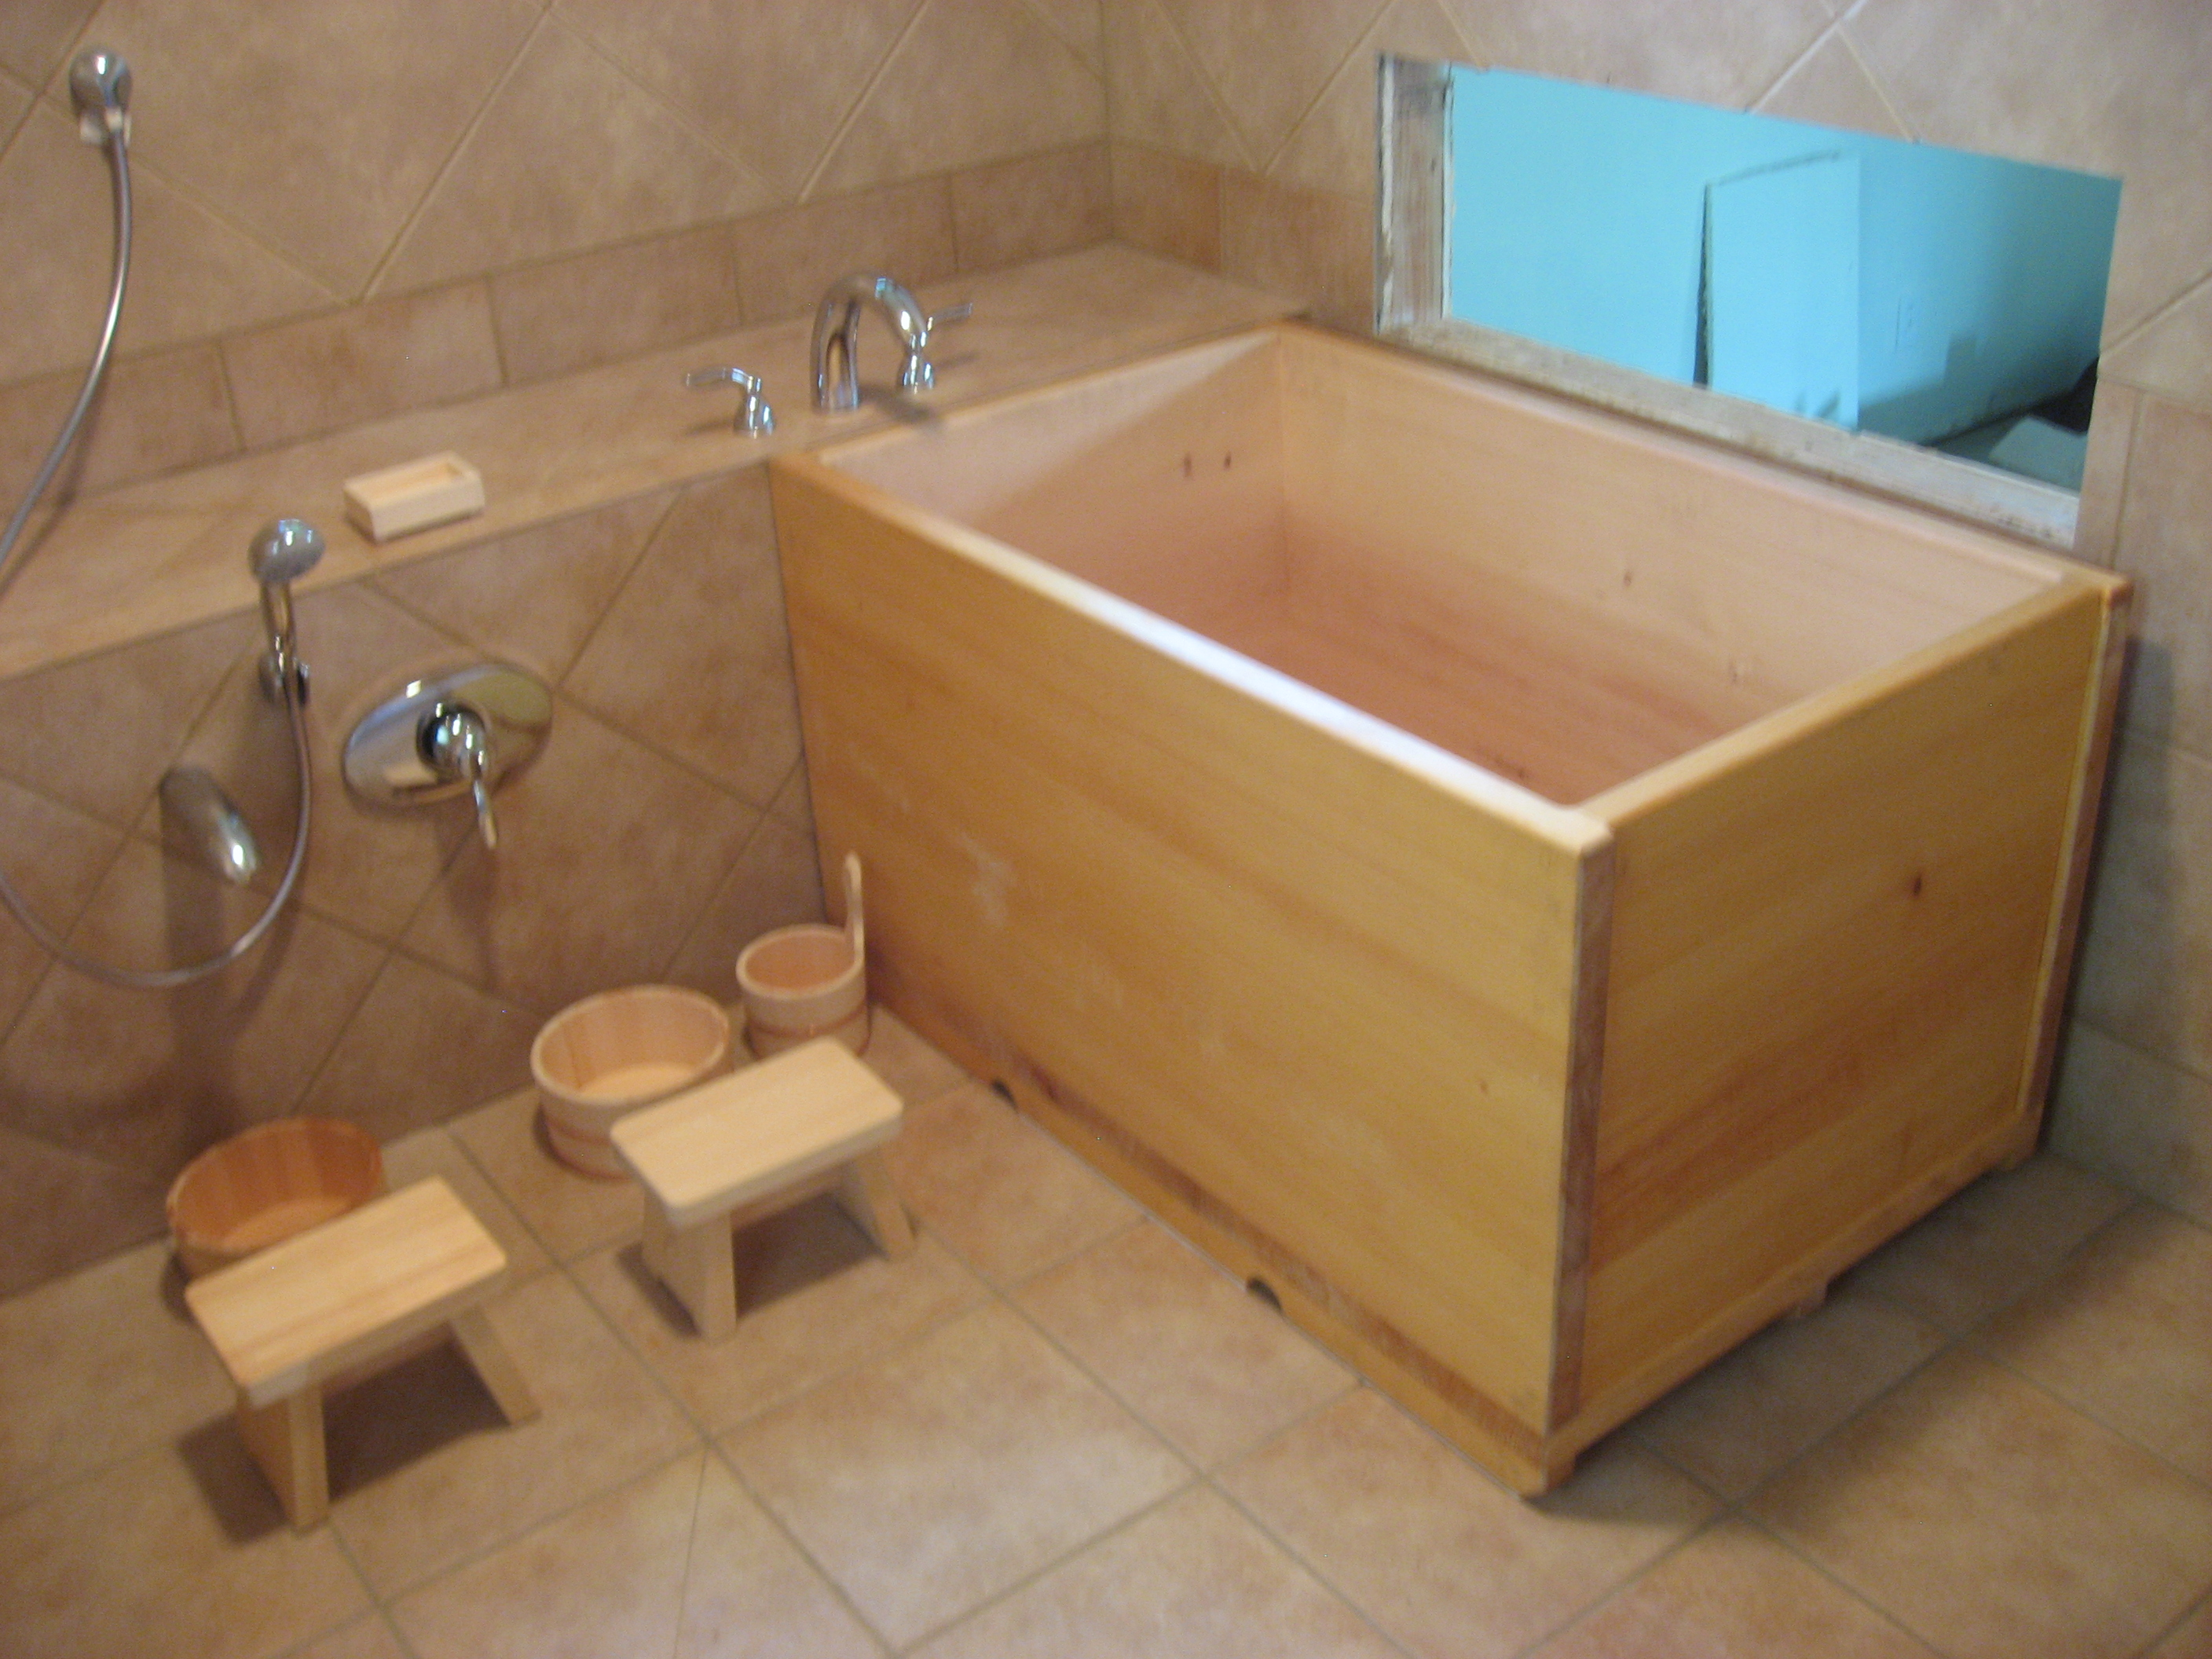 Machwerx blog archive ofuro for Bathtub in bathroom